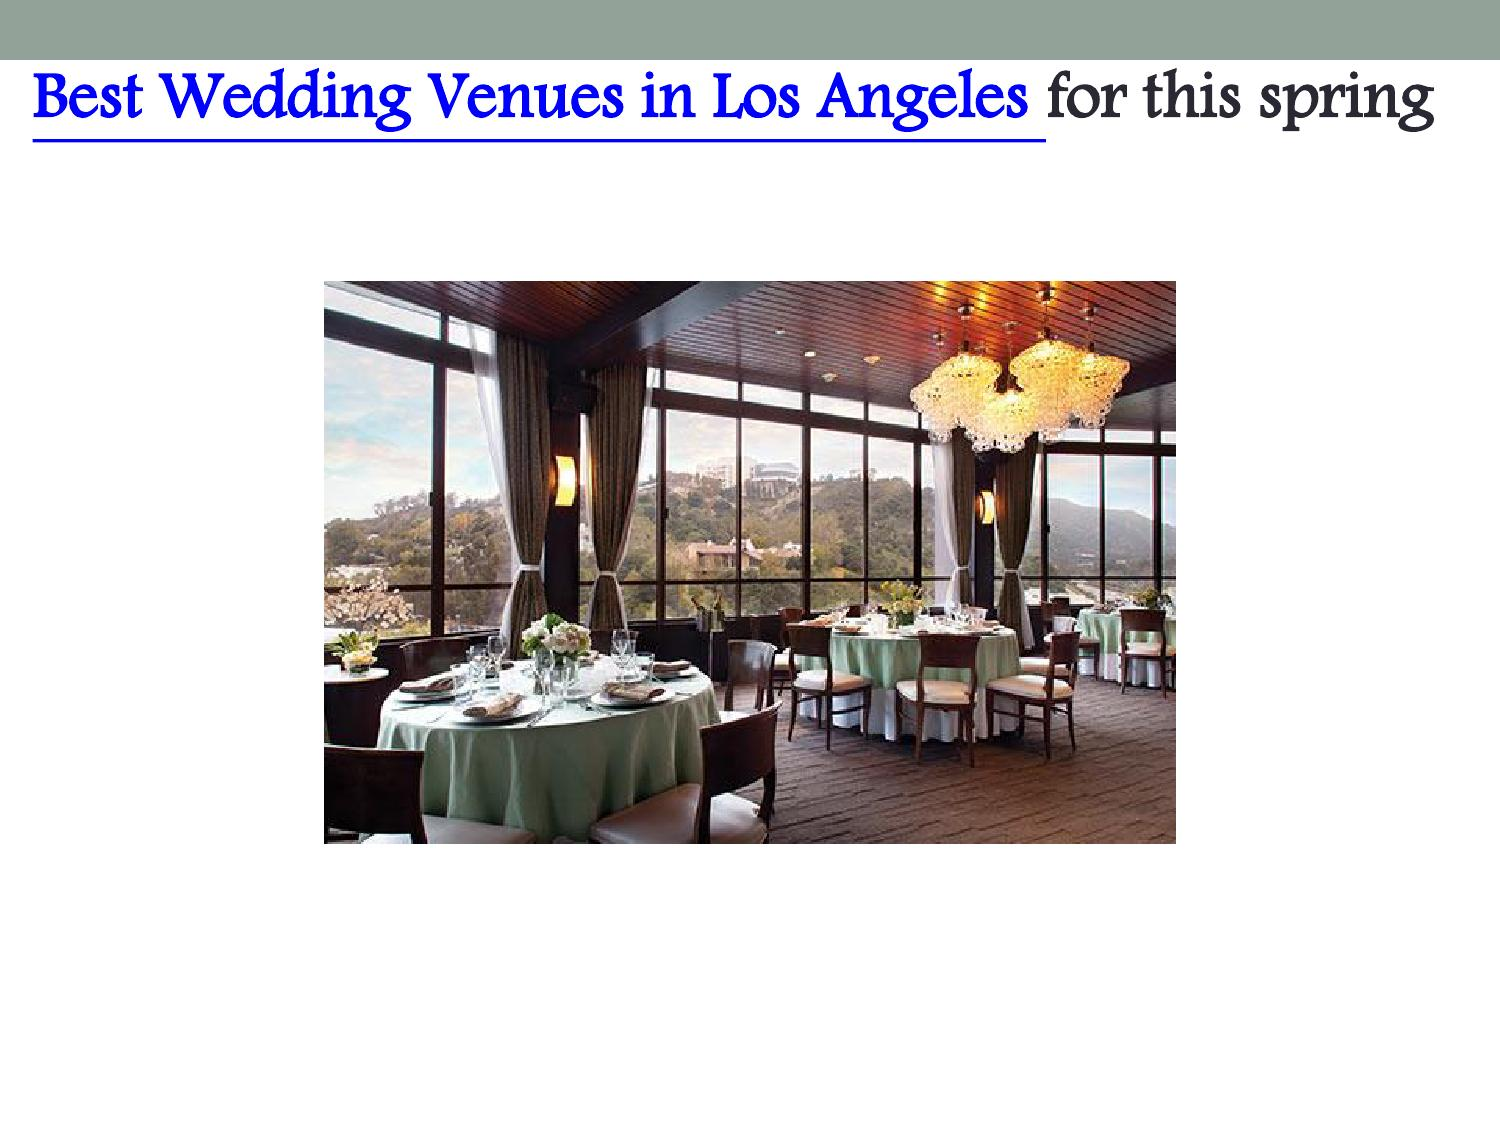 Best Wedding Venues In Los Angeles For This Spring By Evenuebooking